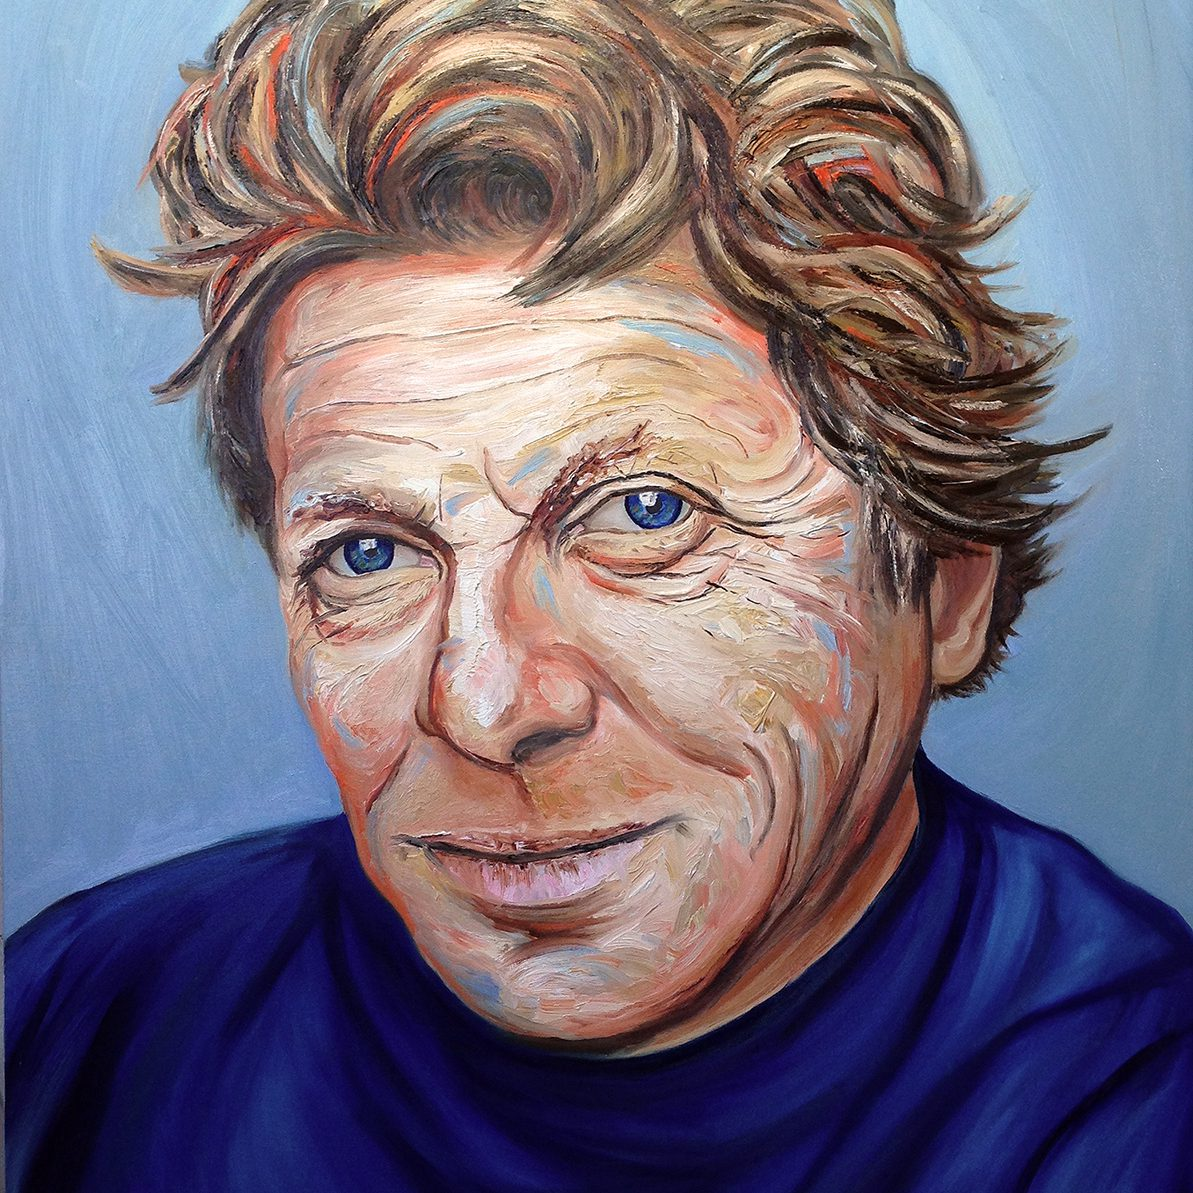 The Sculptor | Portrait of the sculptor Ben Dearnley | Oil on canvas | 96 x 122 cm